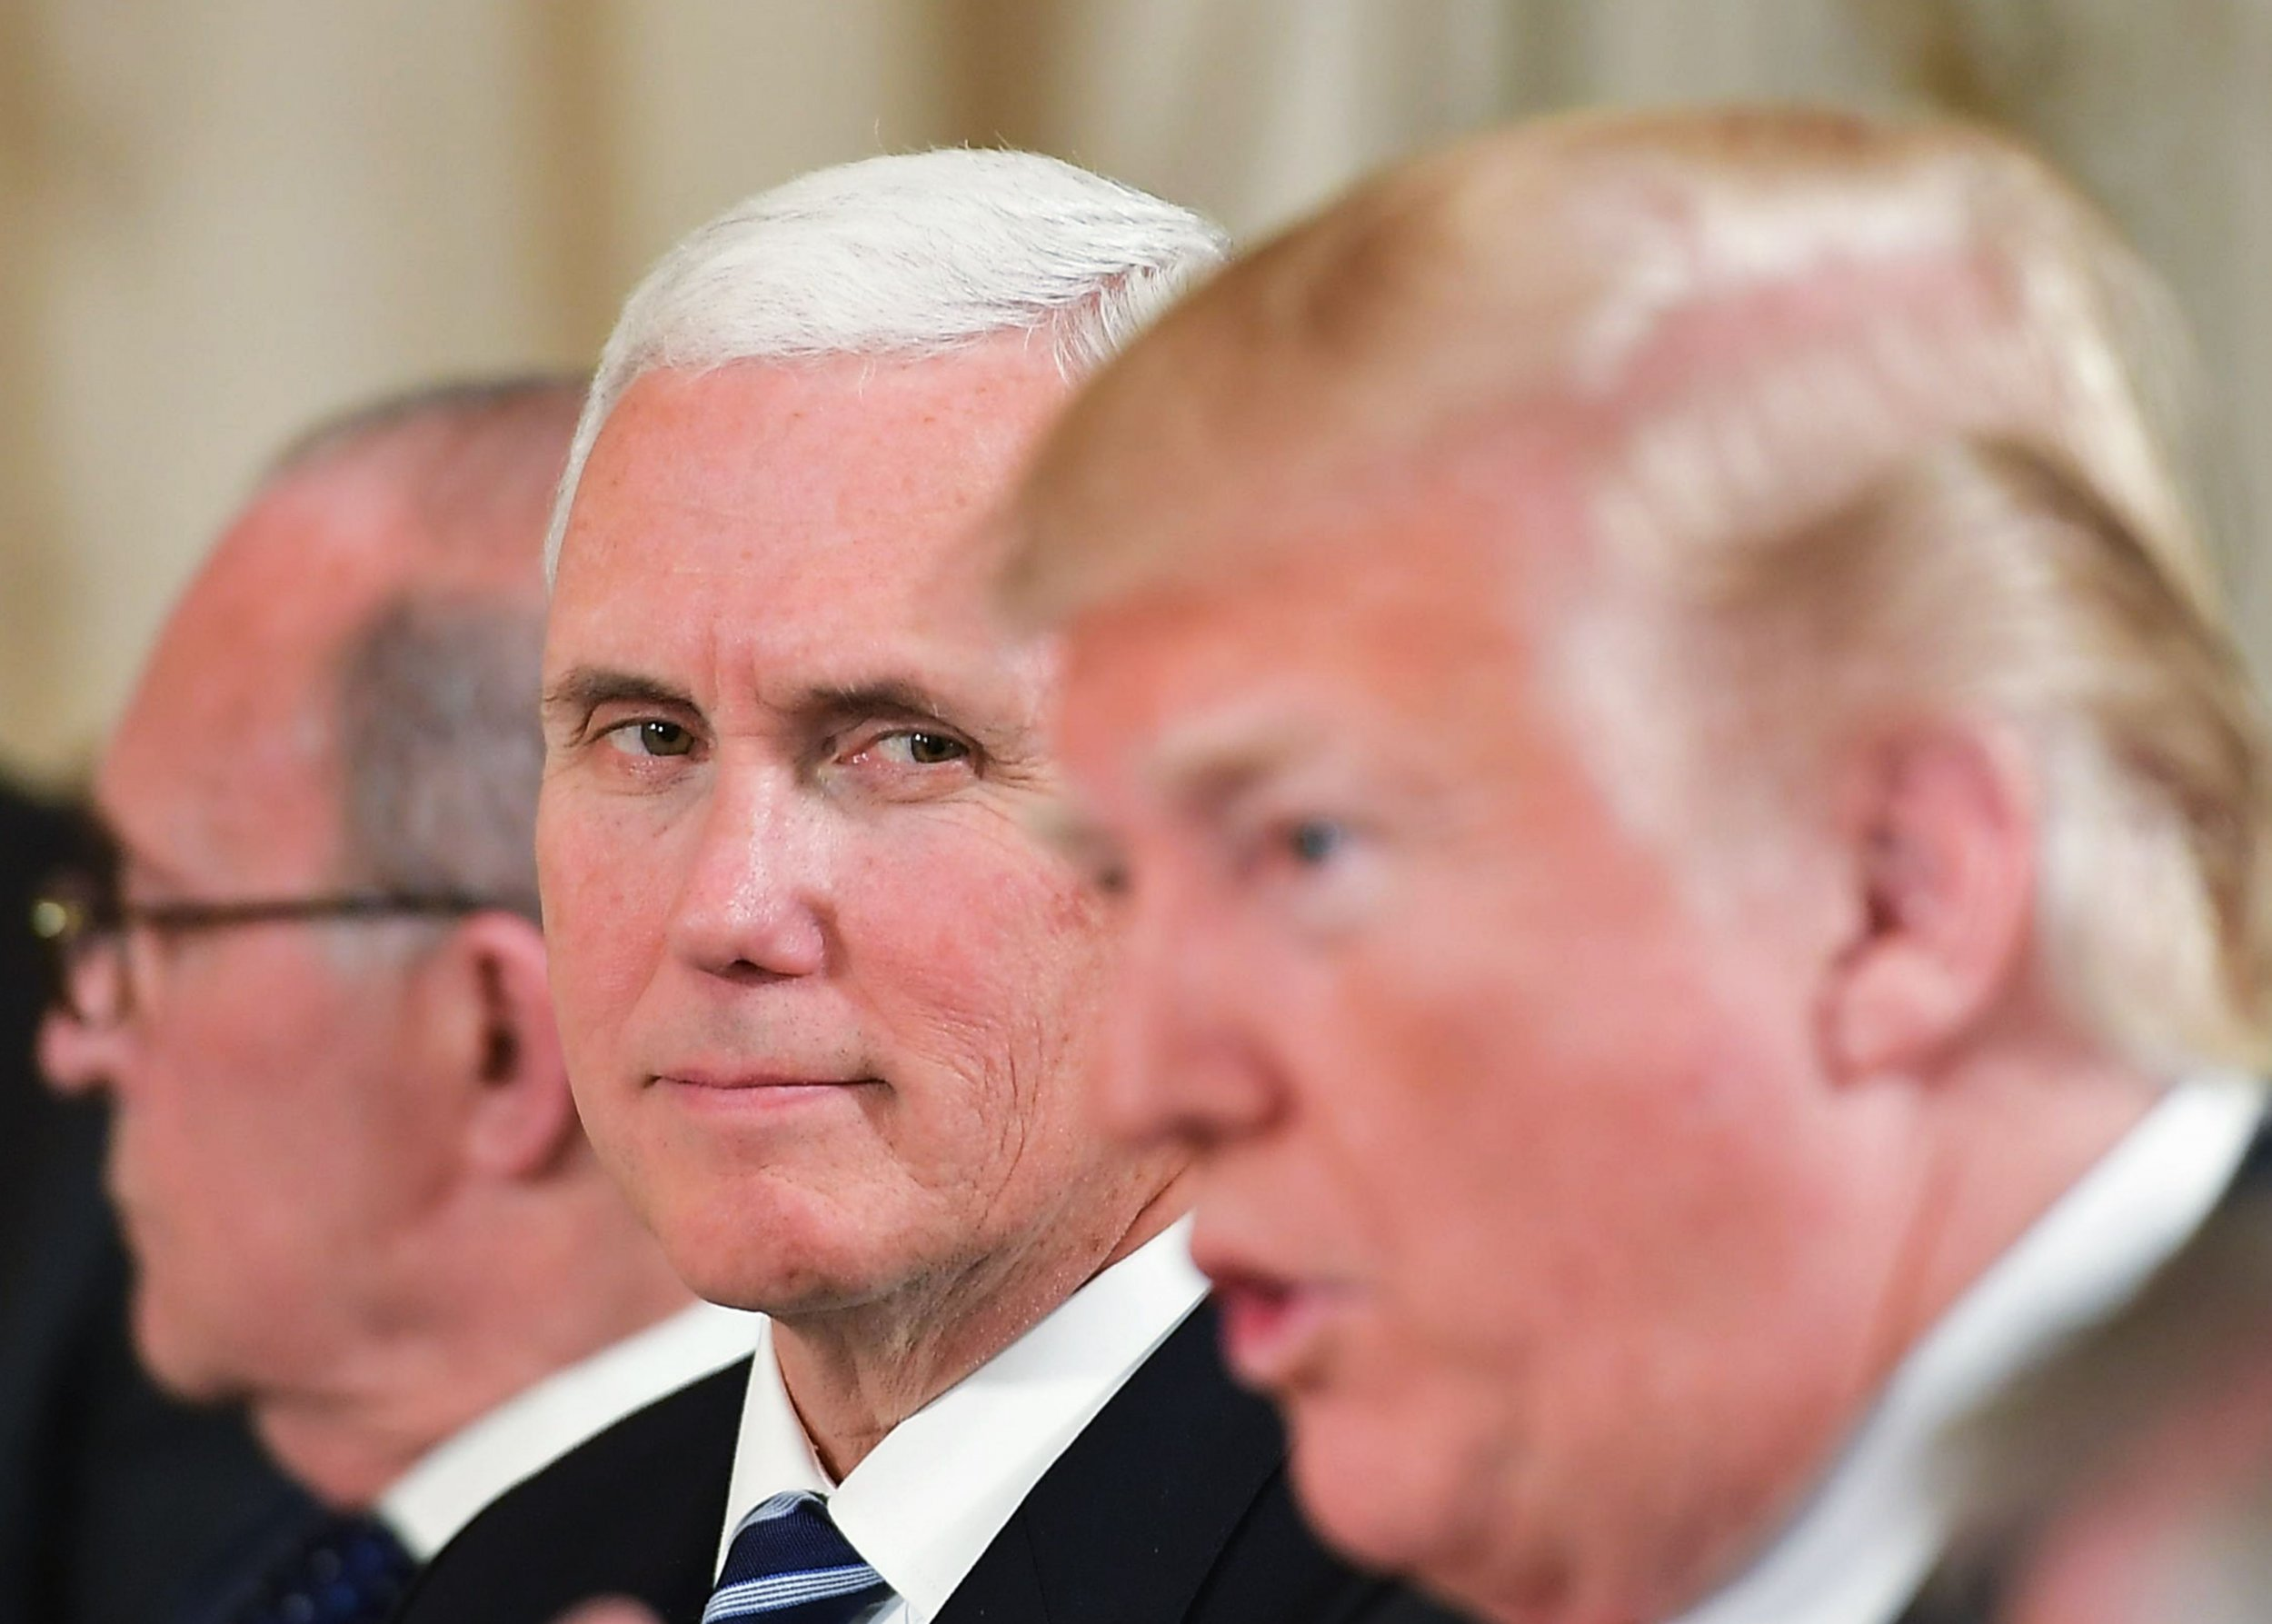 donald trump mike pence satanic temple leader lucien graves